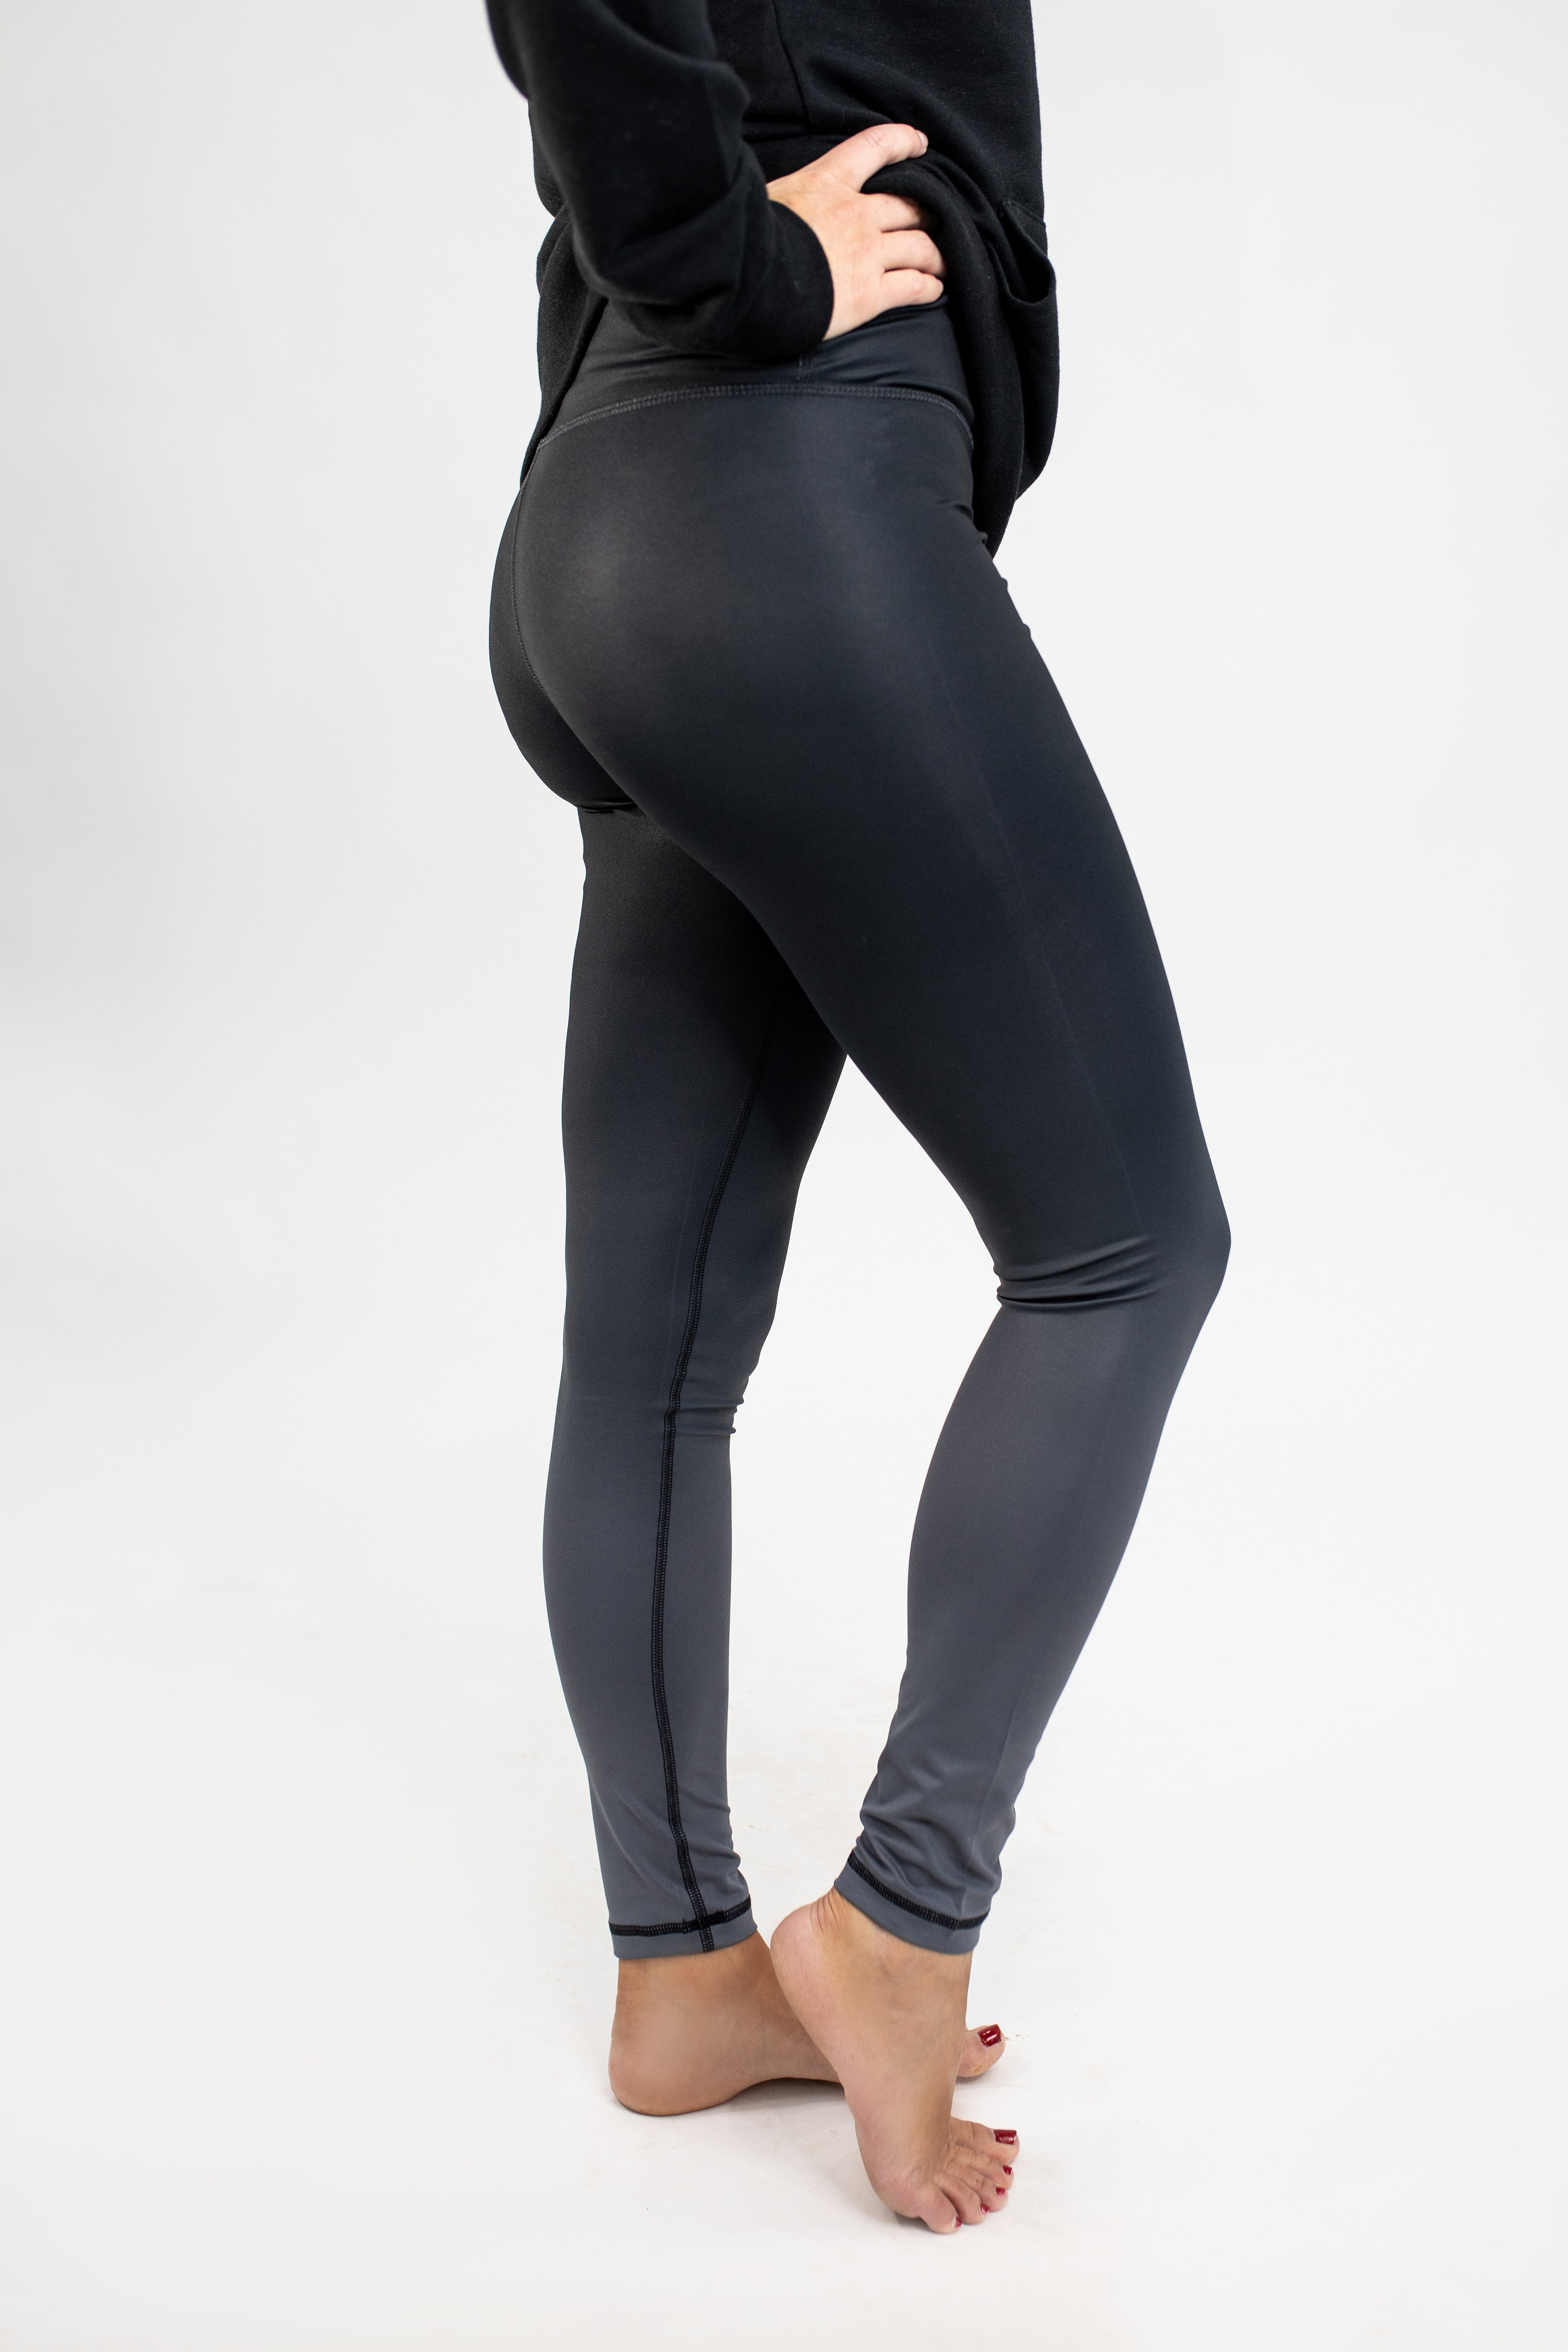 Charcoal Ombre Essential Leggings